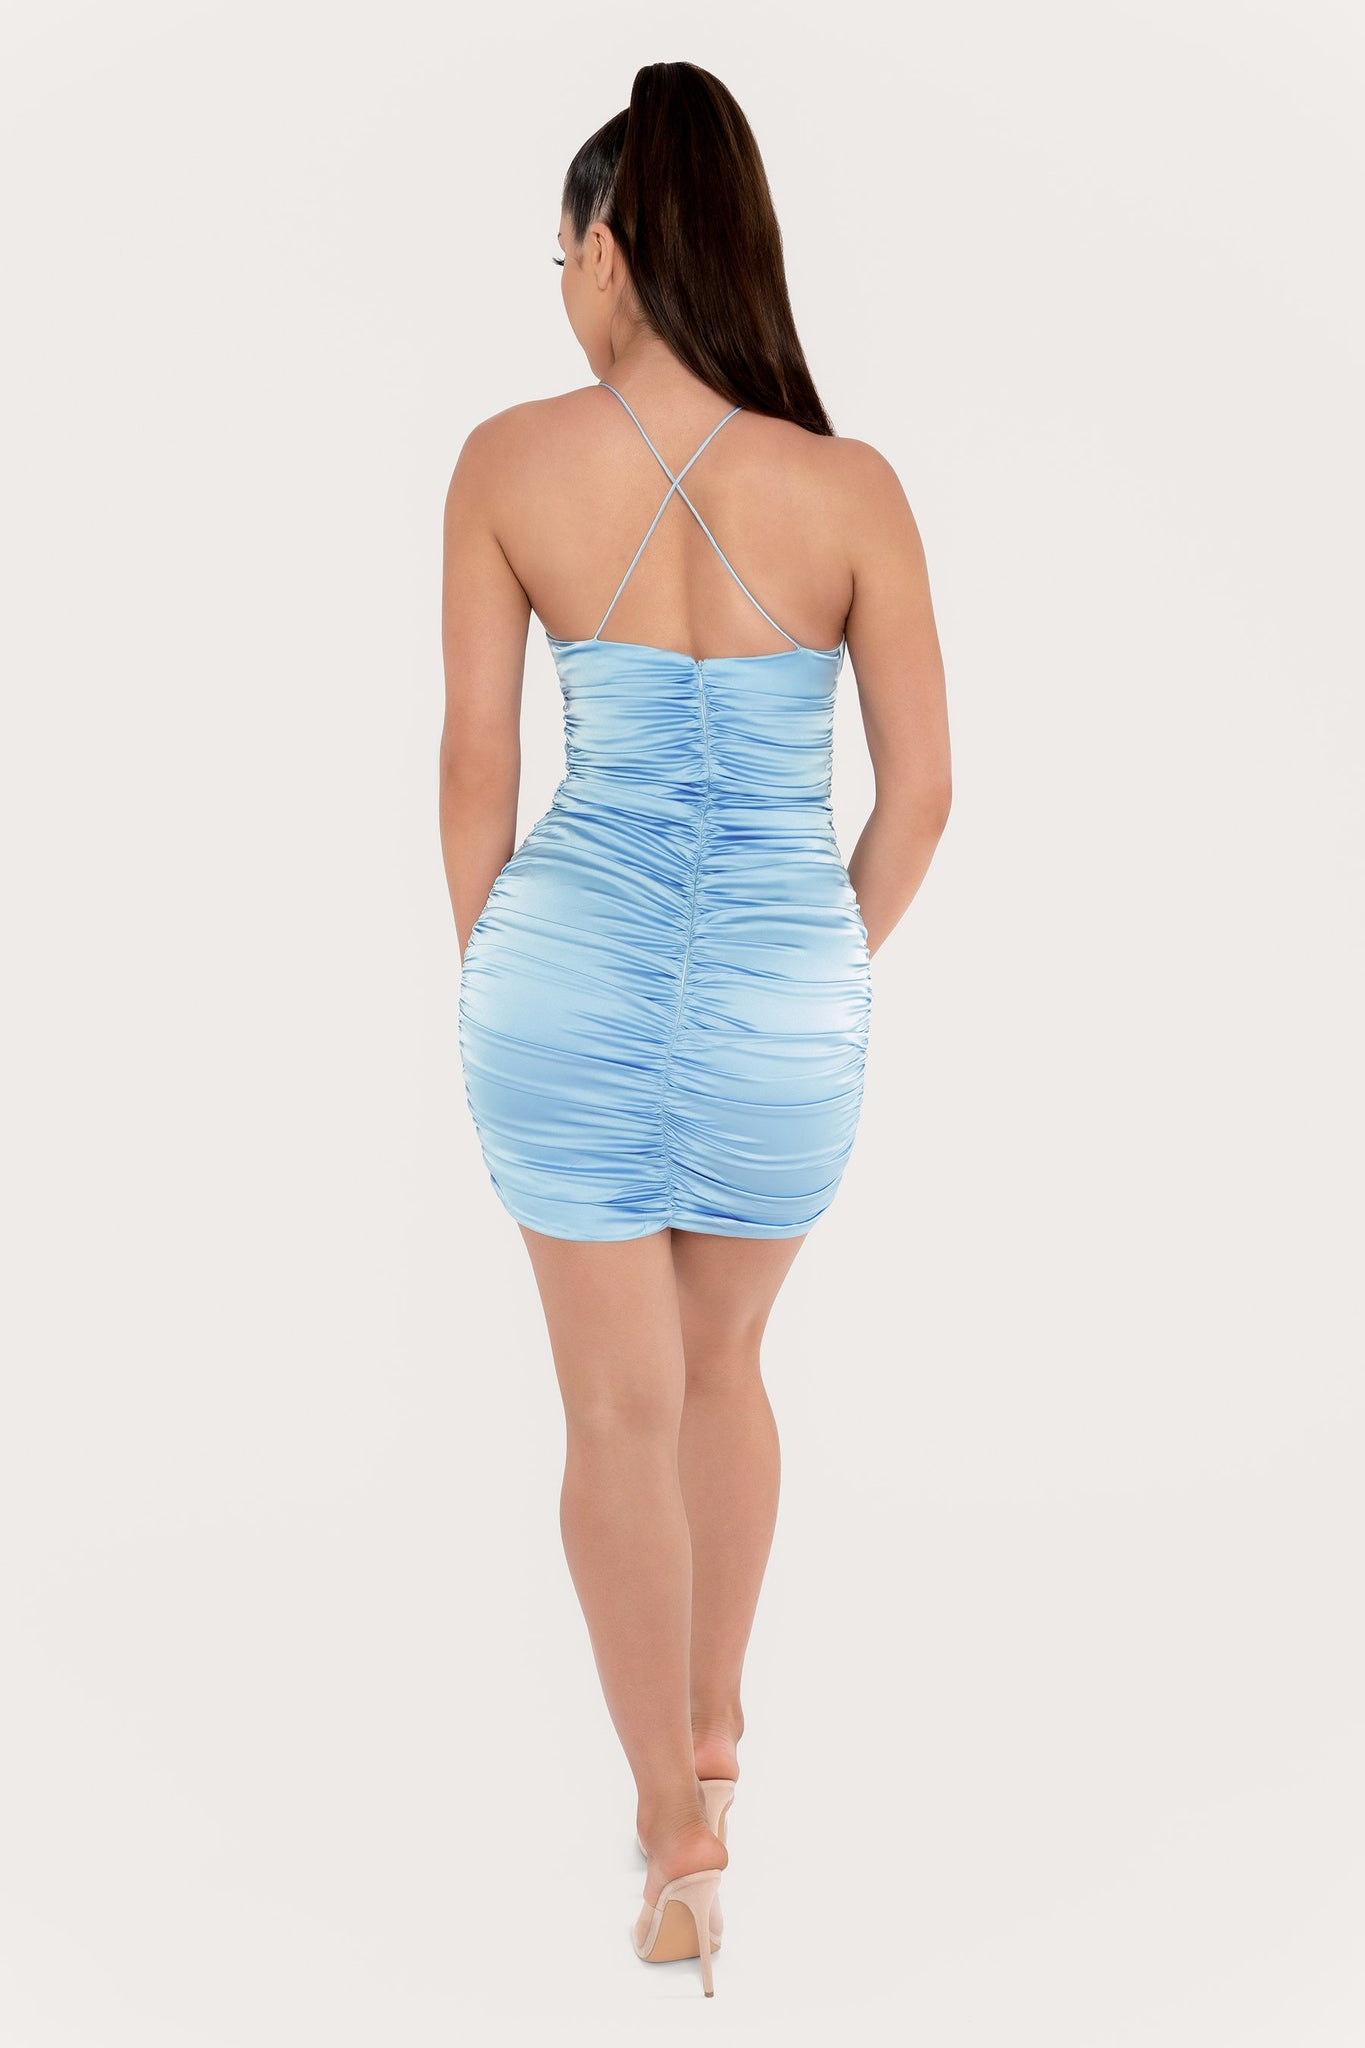 Kaela Ruched Front Tie Up Mini Dress - Dusty Blue - MESHKI